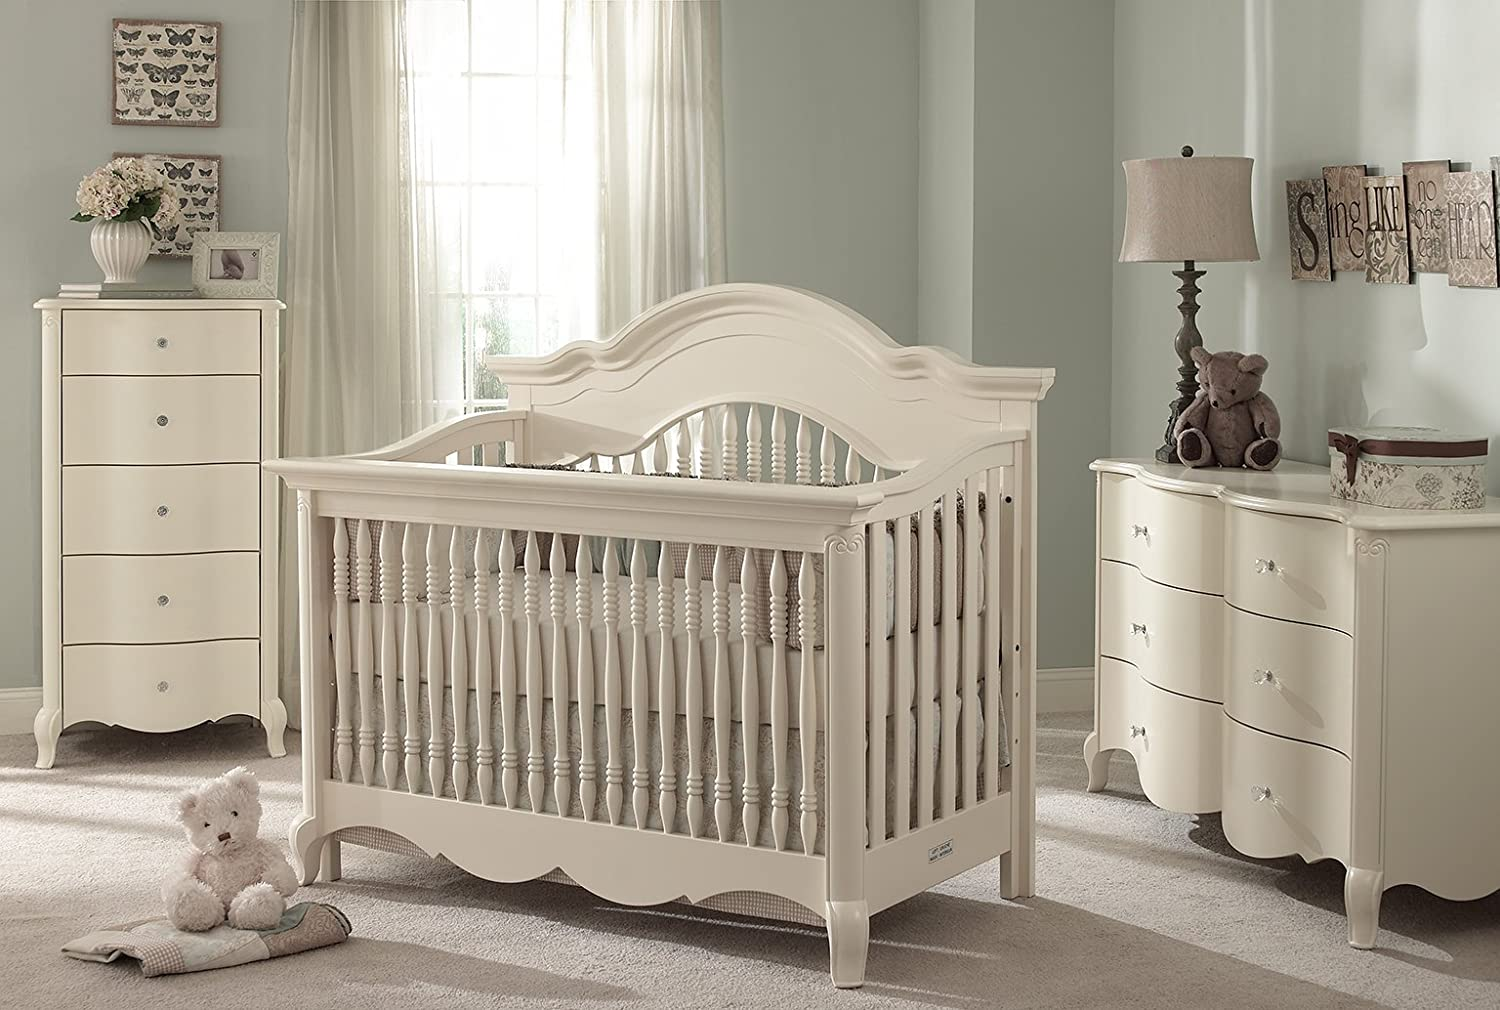 Baby bed olx - Baby Bed Olx 22